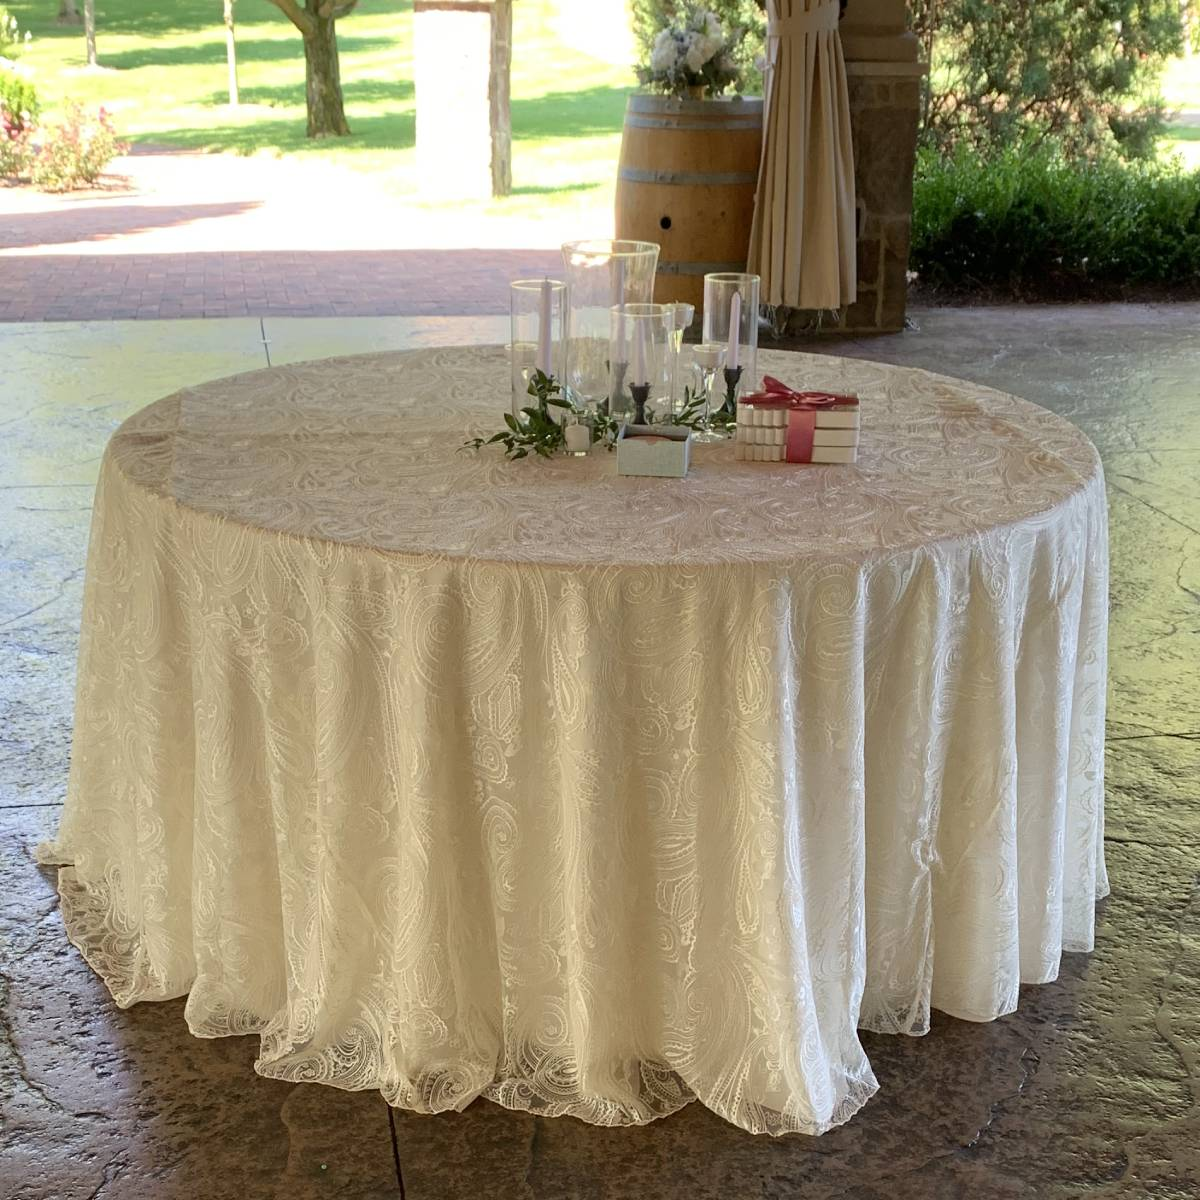 "108"" Round Ivory Solid Tablecover With 108"" Round Ivory Paisley Lace Tablecover On 48"" Round Wood Topped Table"